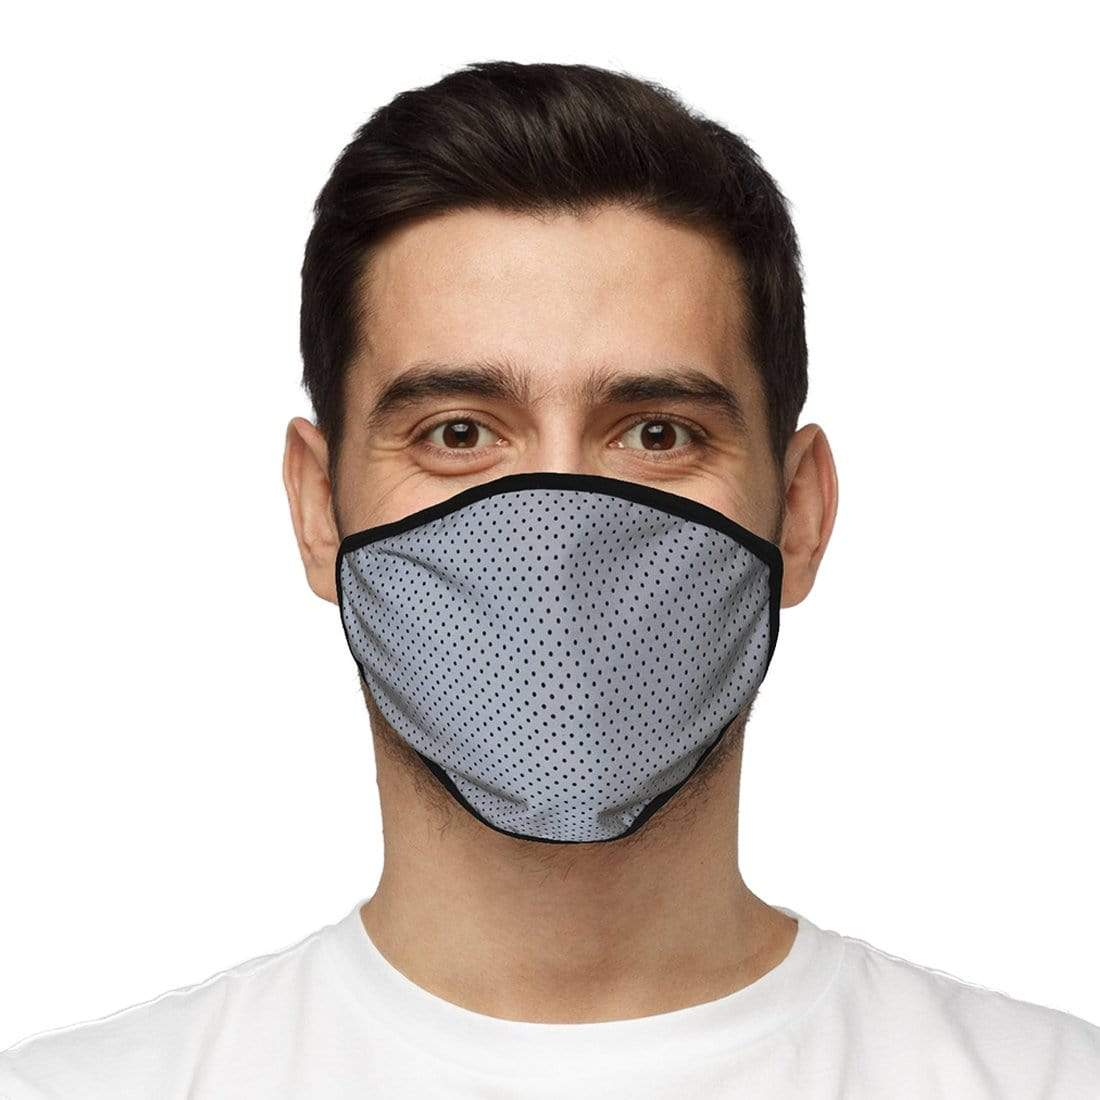 Reflective Action Face Mask ( Limited Edition )